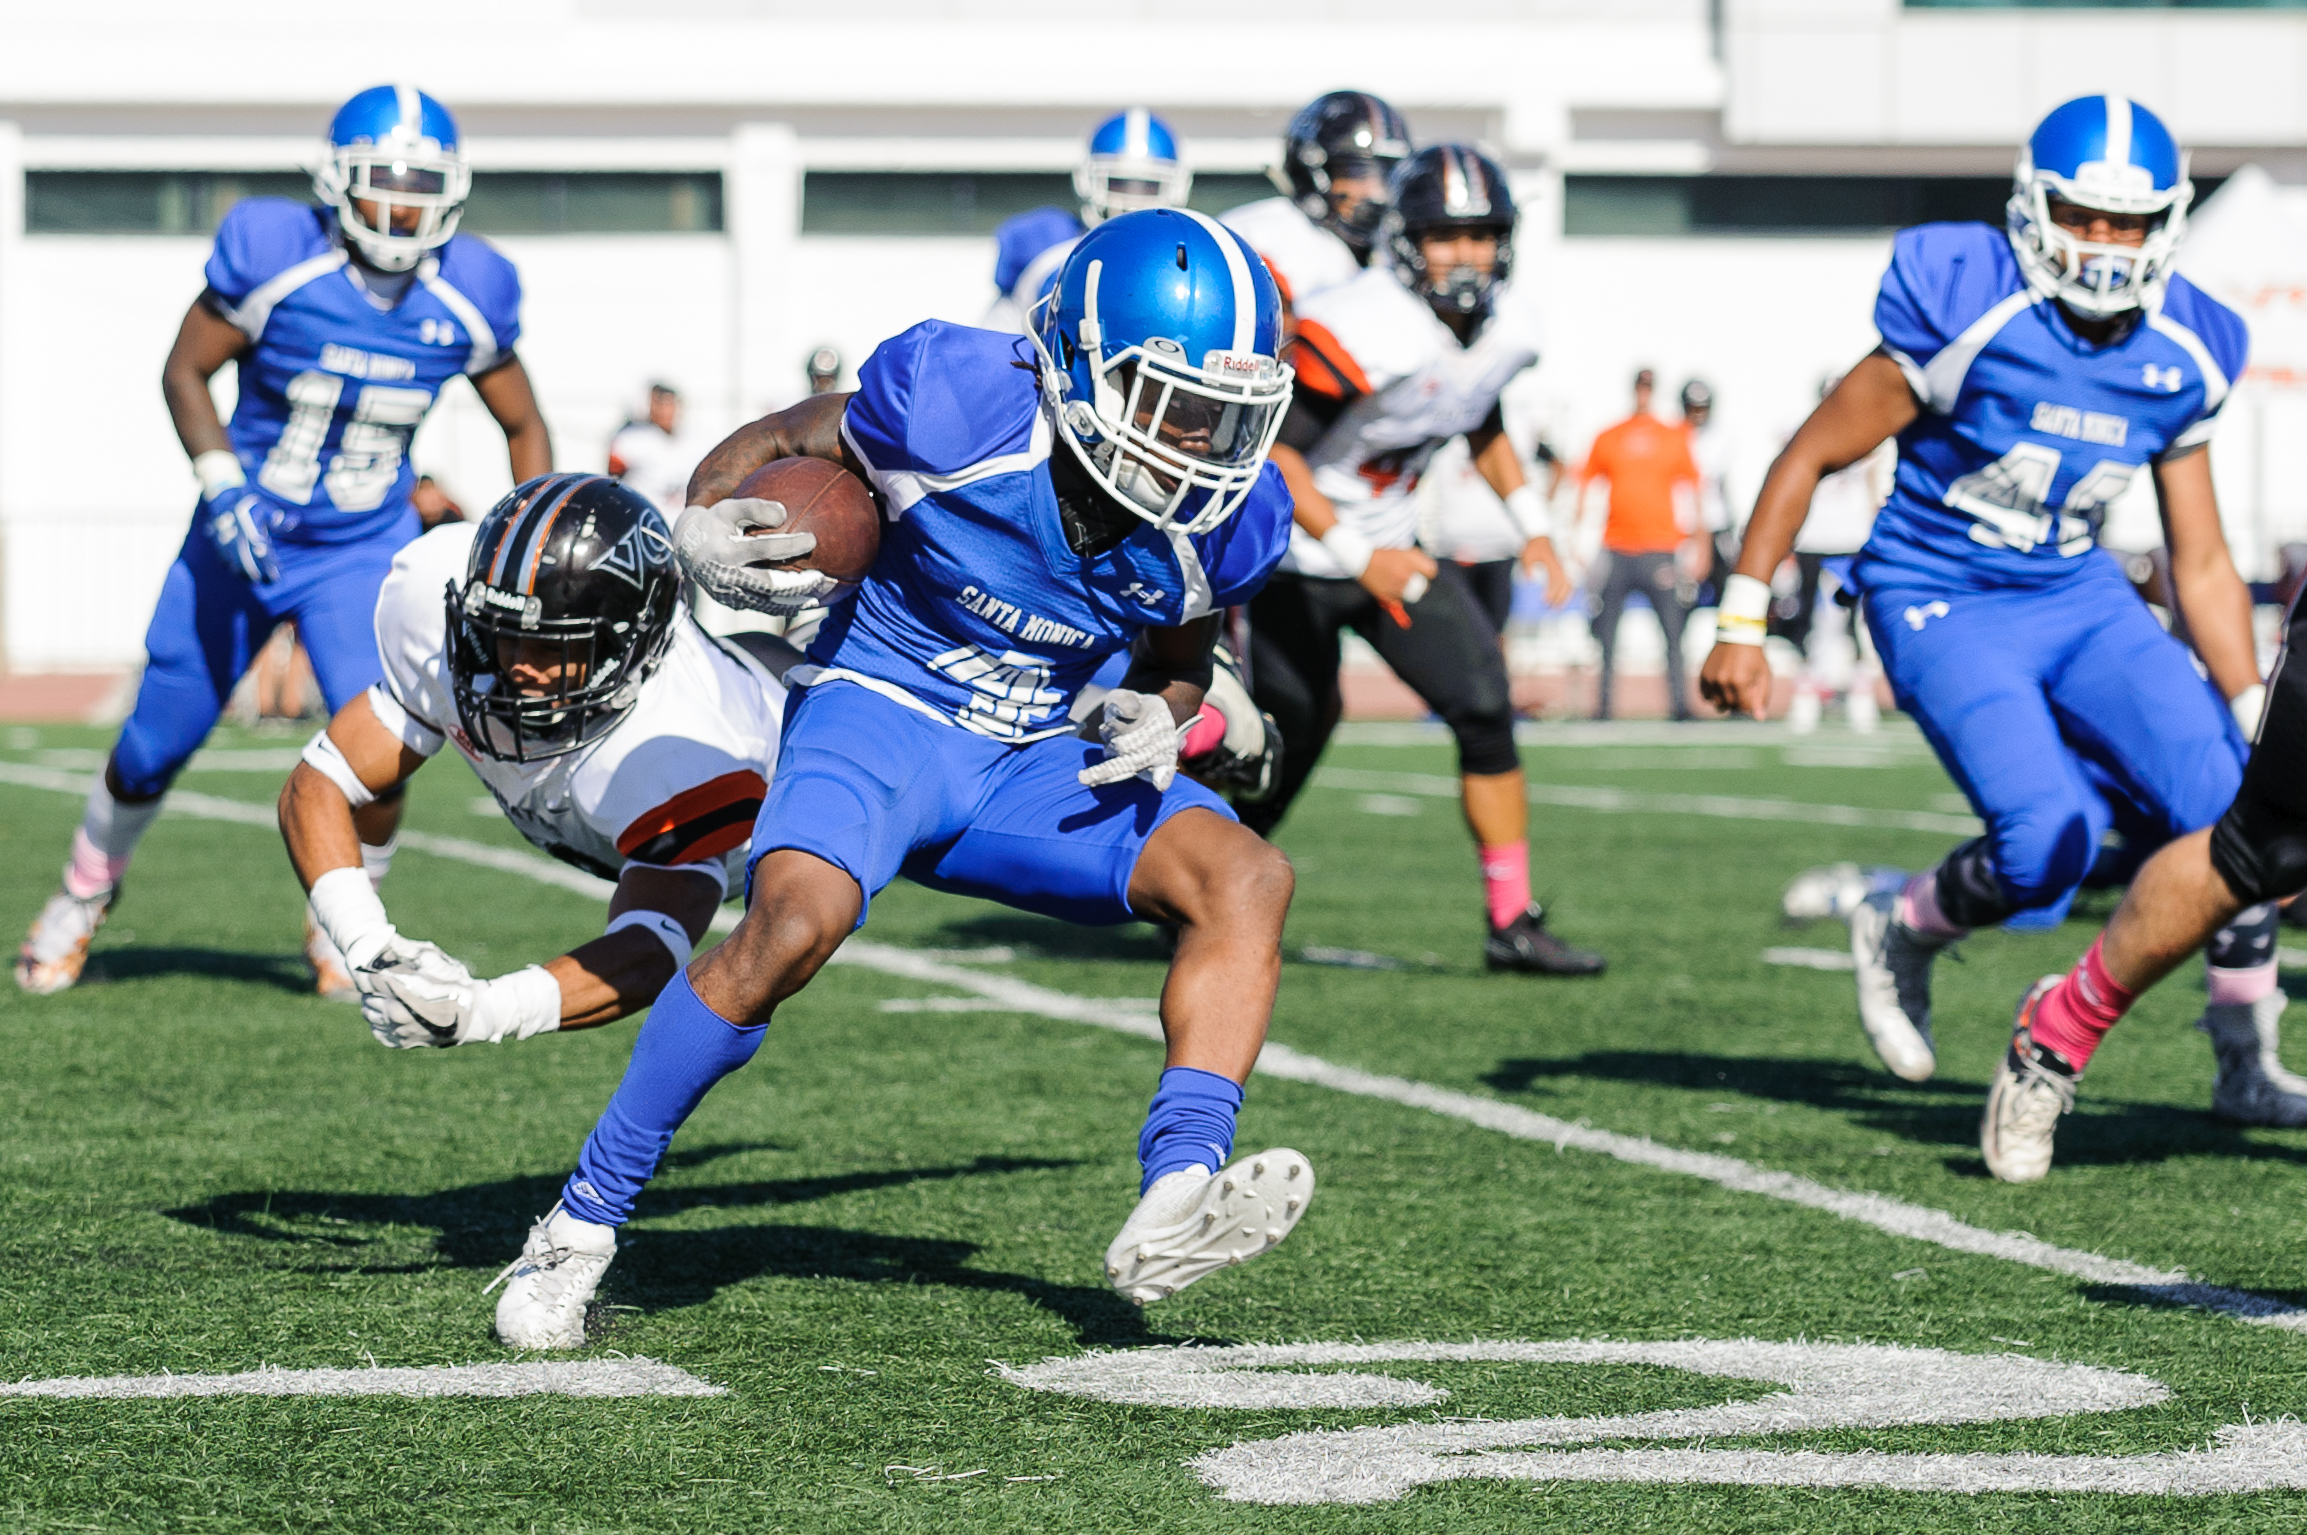 Wide receiver Cristian Franklin (4) of Santa Monica College evades  the Ventura College defense to gain yardage on the play. The Santa Monica College Corsairs lose to the Ventura College Pirates 0-55. The game was held at the Corsair Stadium at the Santa Monica College Main Campus in Santa Monica, Calif.. October 21, 2017. (Photo by: Justin Han/Corsair Staff)